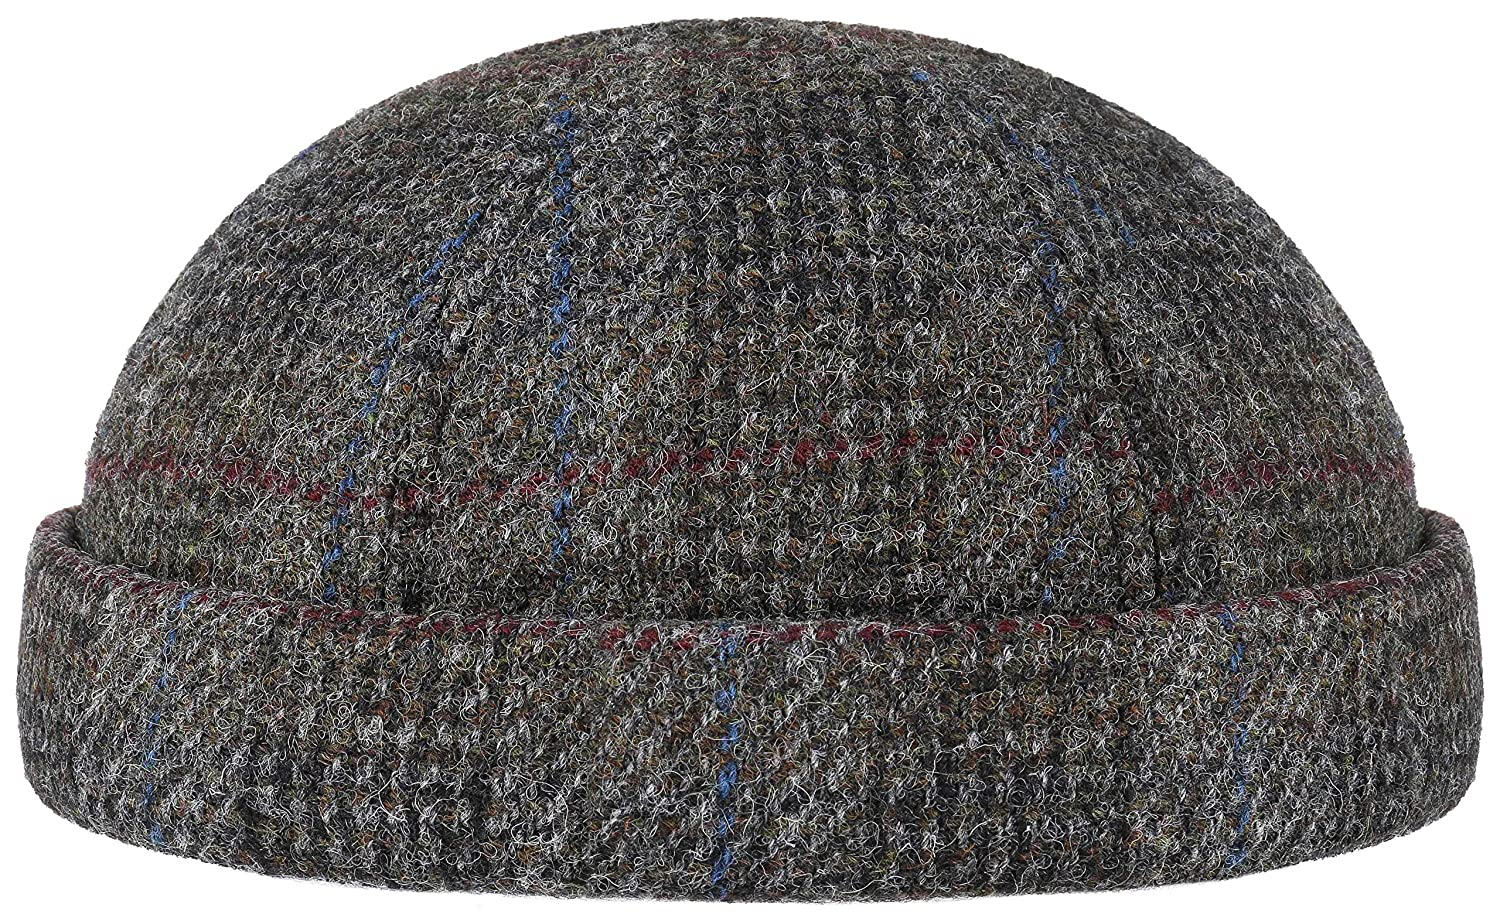 Stetson - Docker Harris Tweed Virgin Wool Check - Mod.8820301 - für Herbst Winter und Frühling - Cap - Headset Starre - Zwei Farben - Original - Wonderful